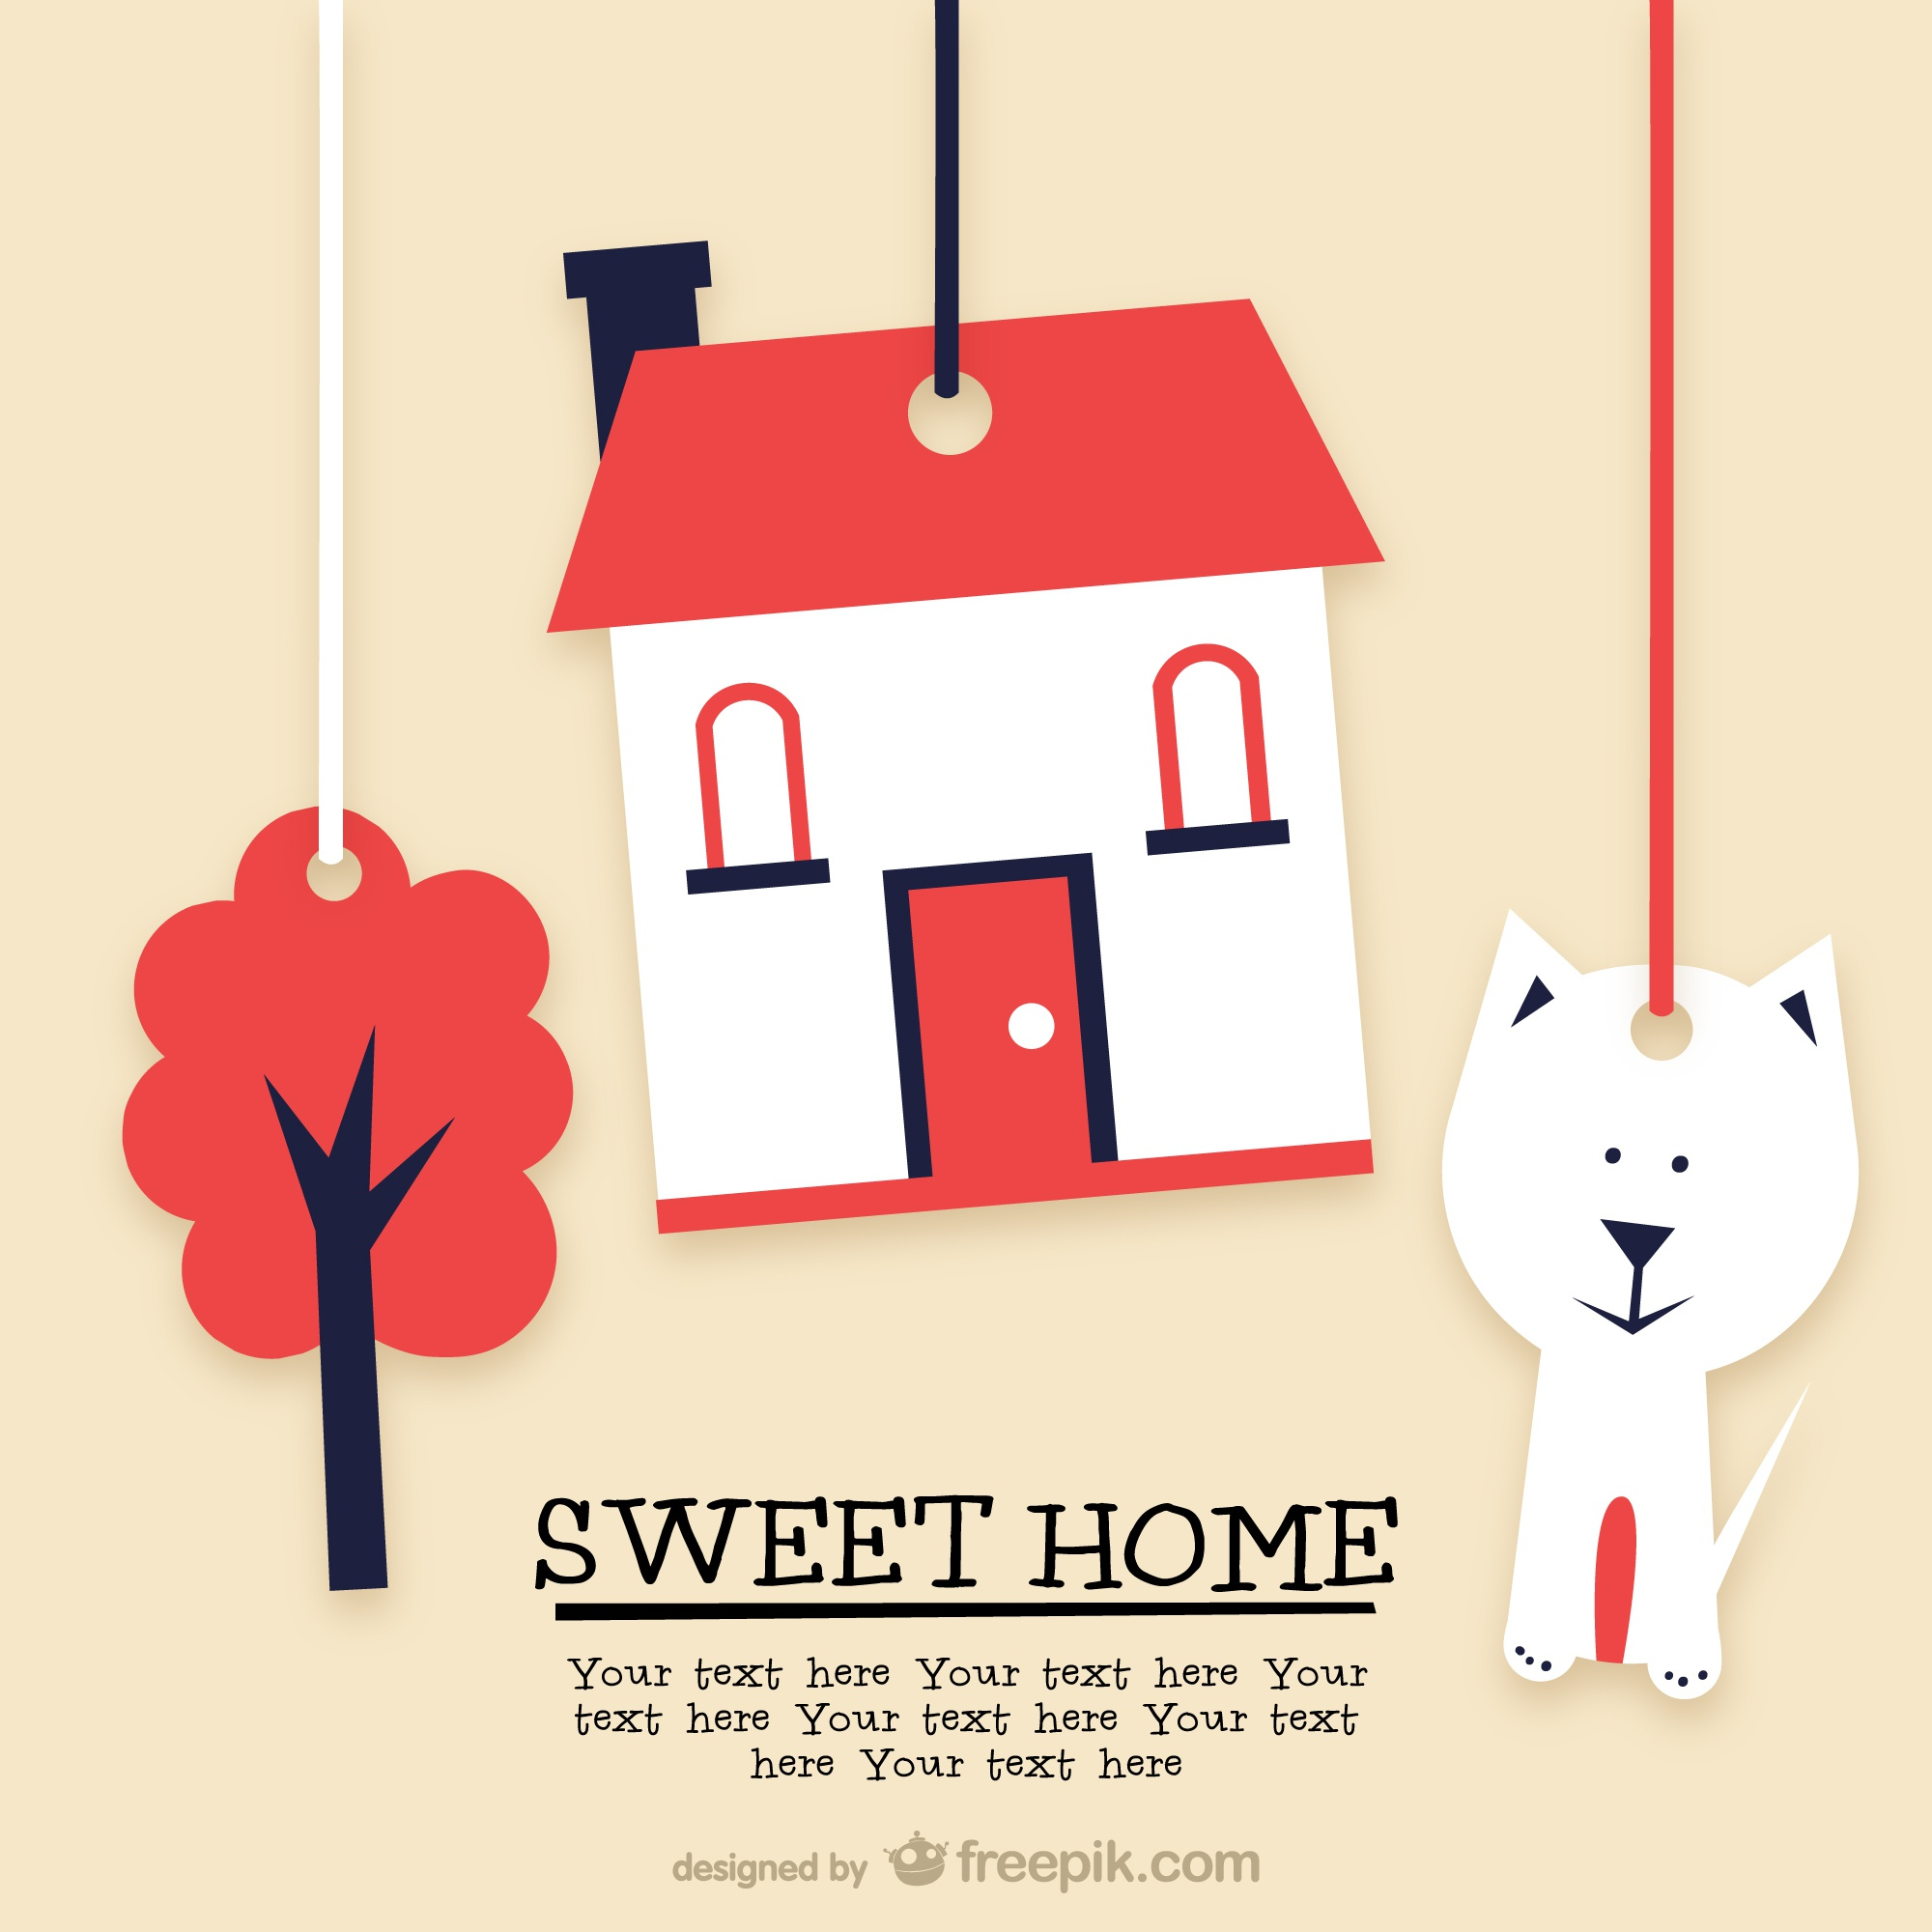 Sweet home template design